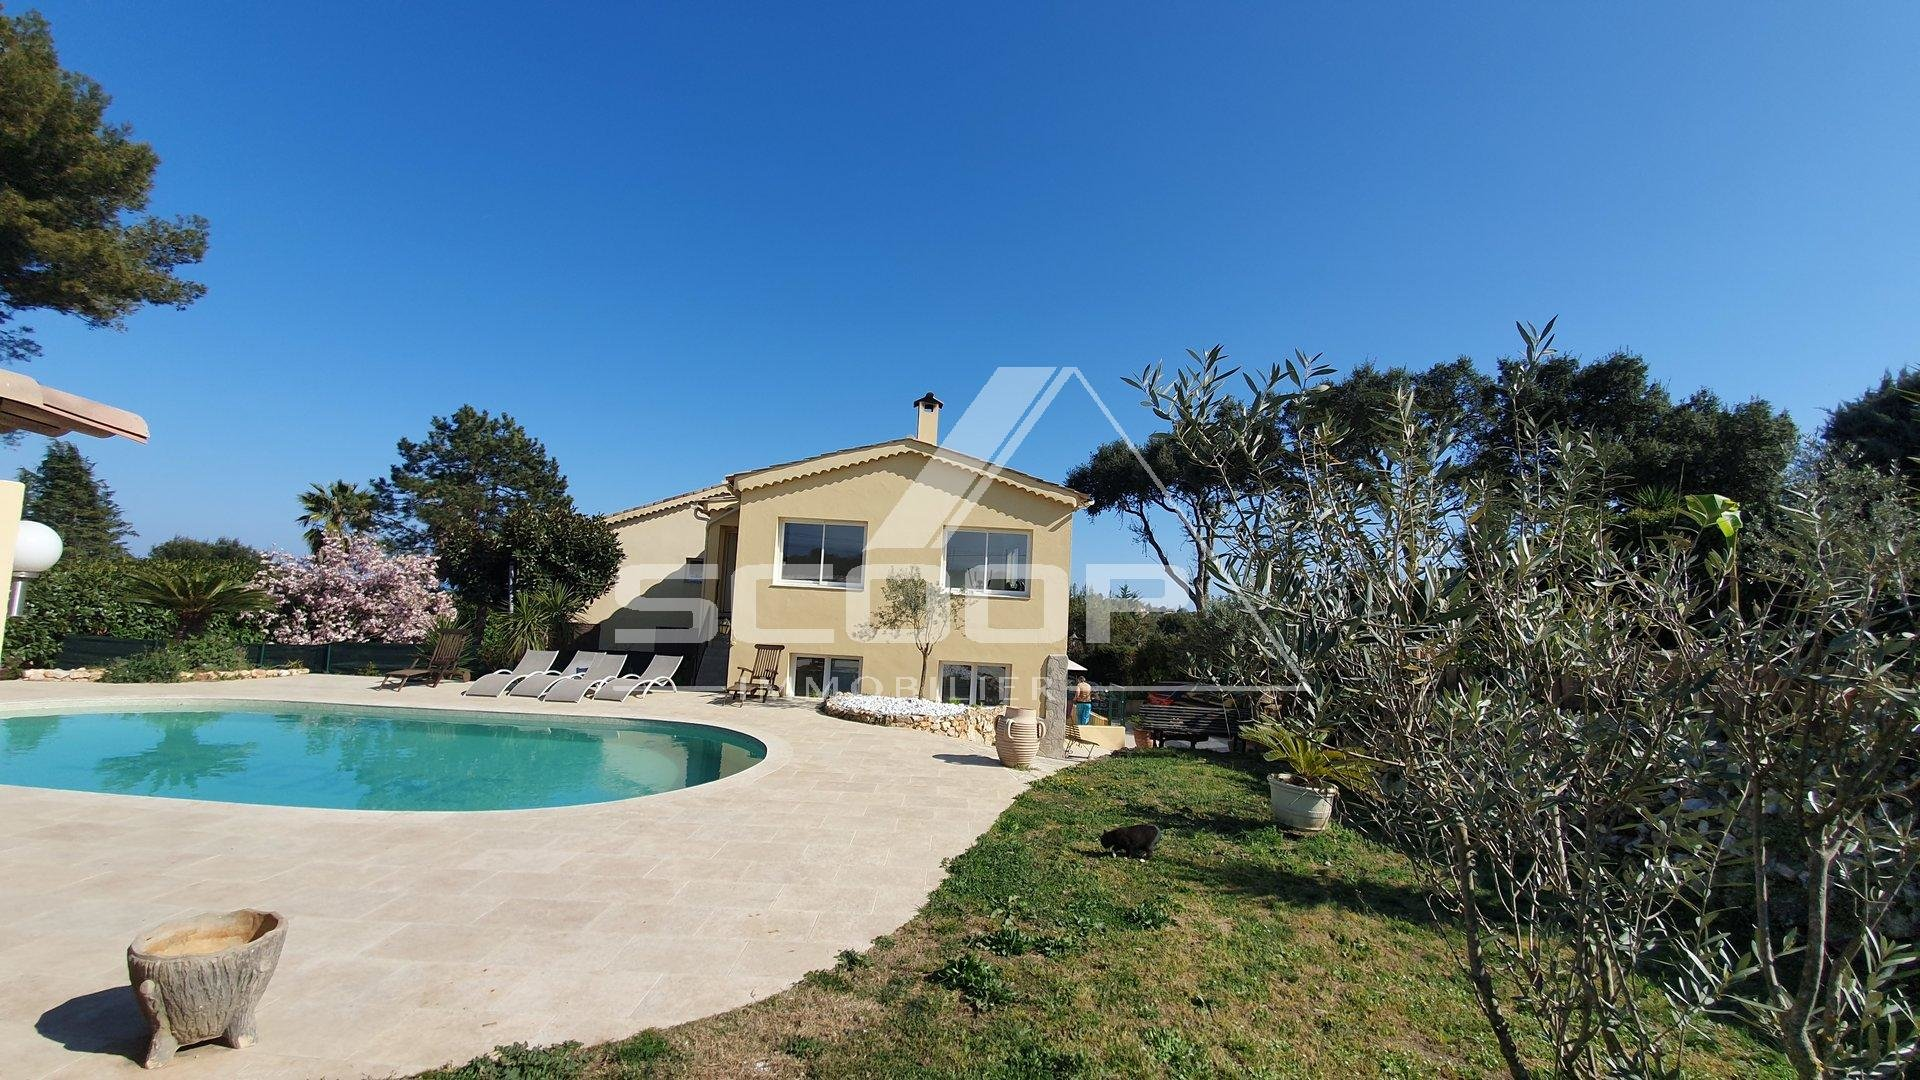 ANTIBES HEIGHTS VILLA